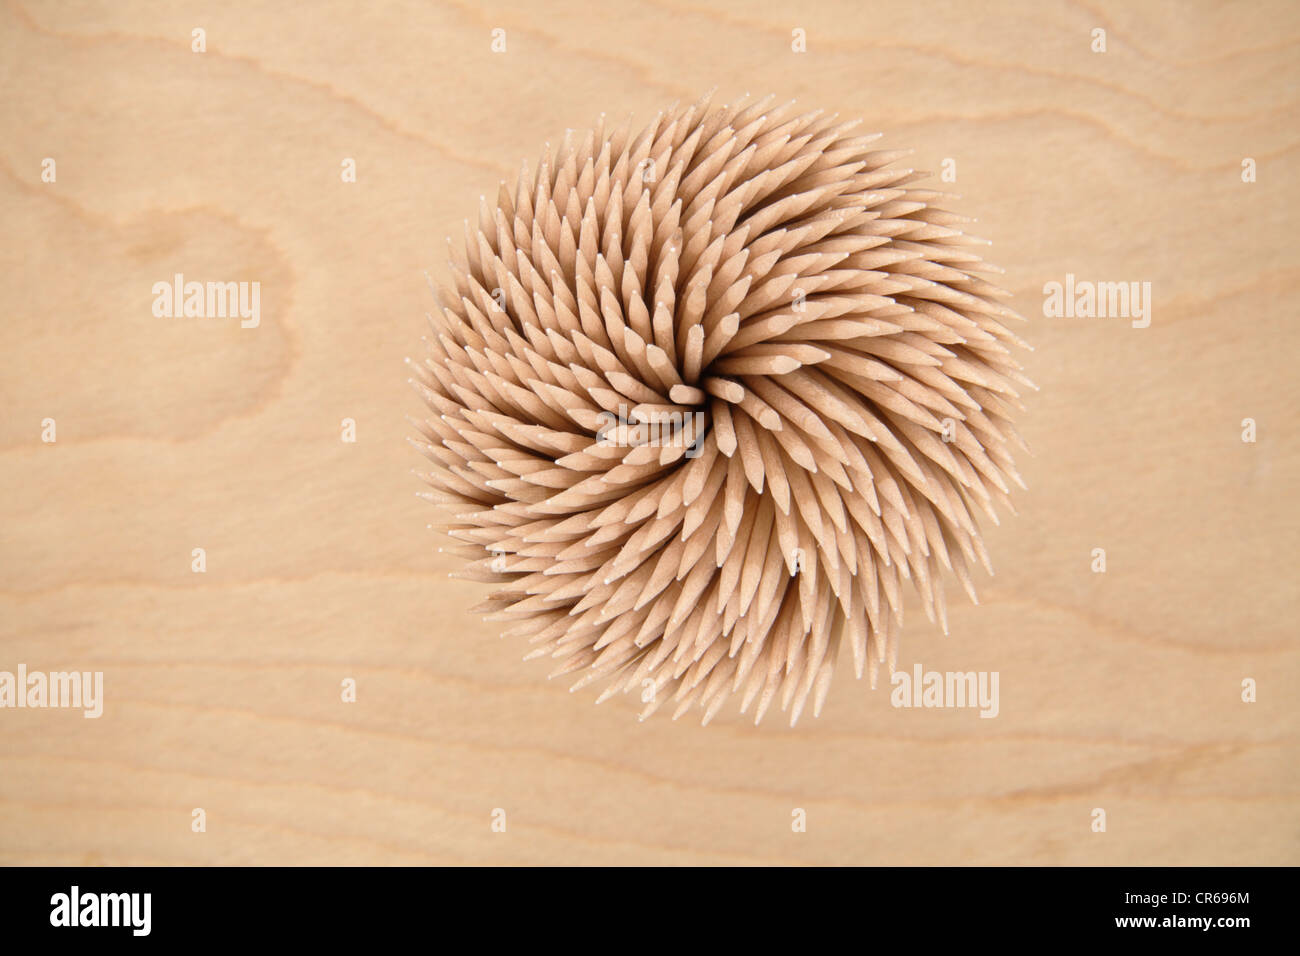 Tooth pick bundle on wooden table, close up - Stock Image